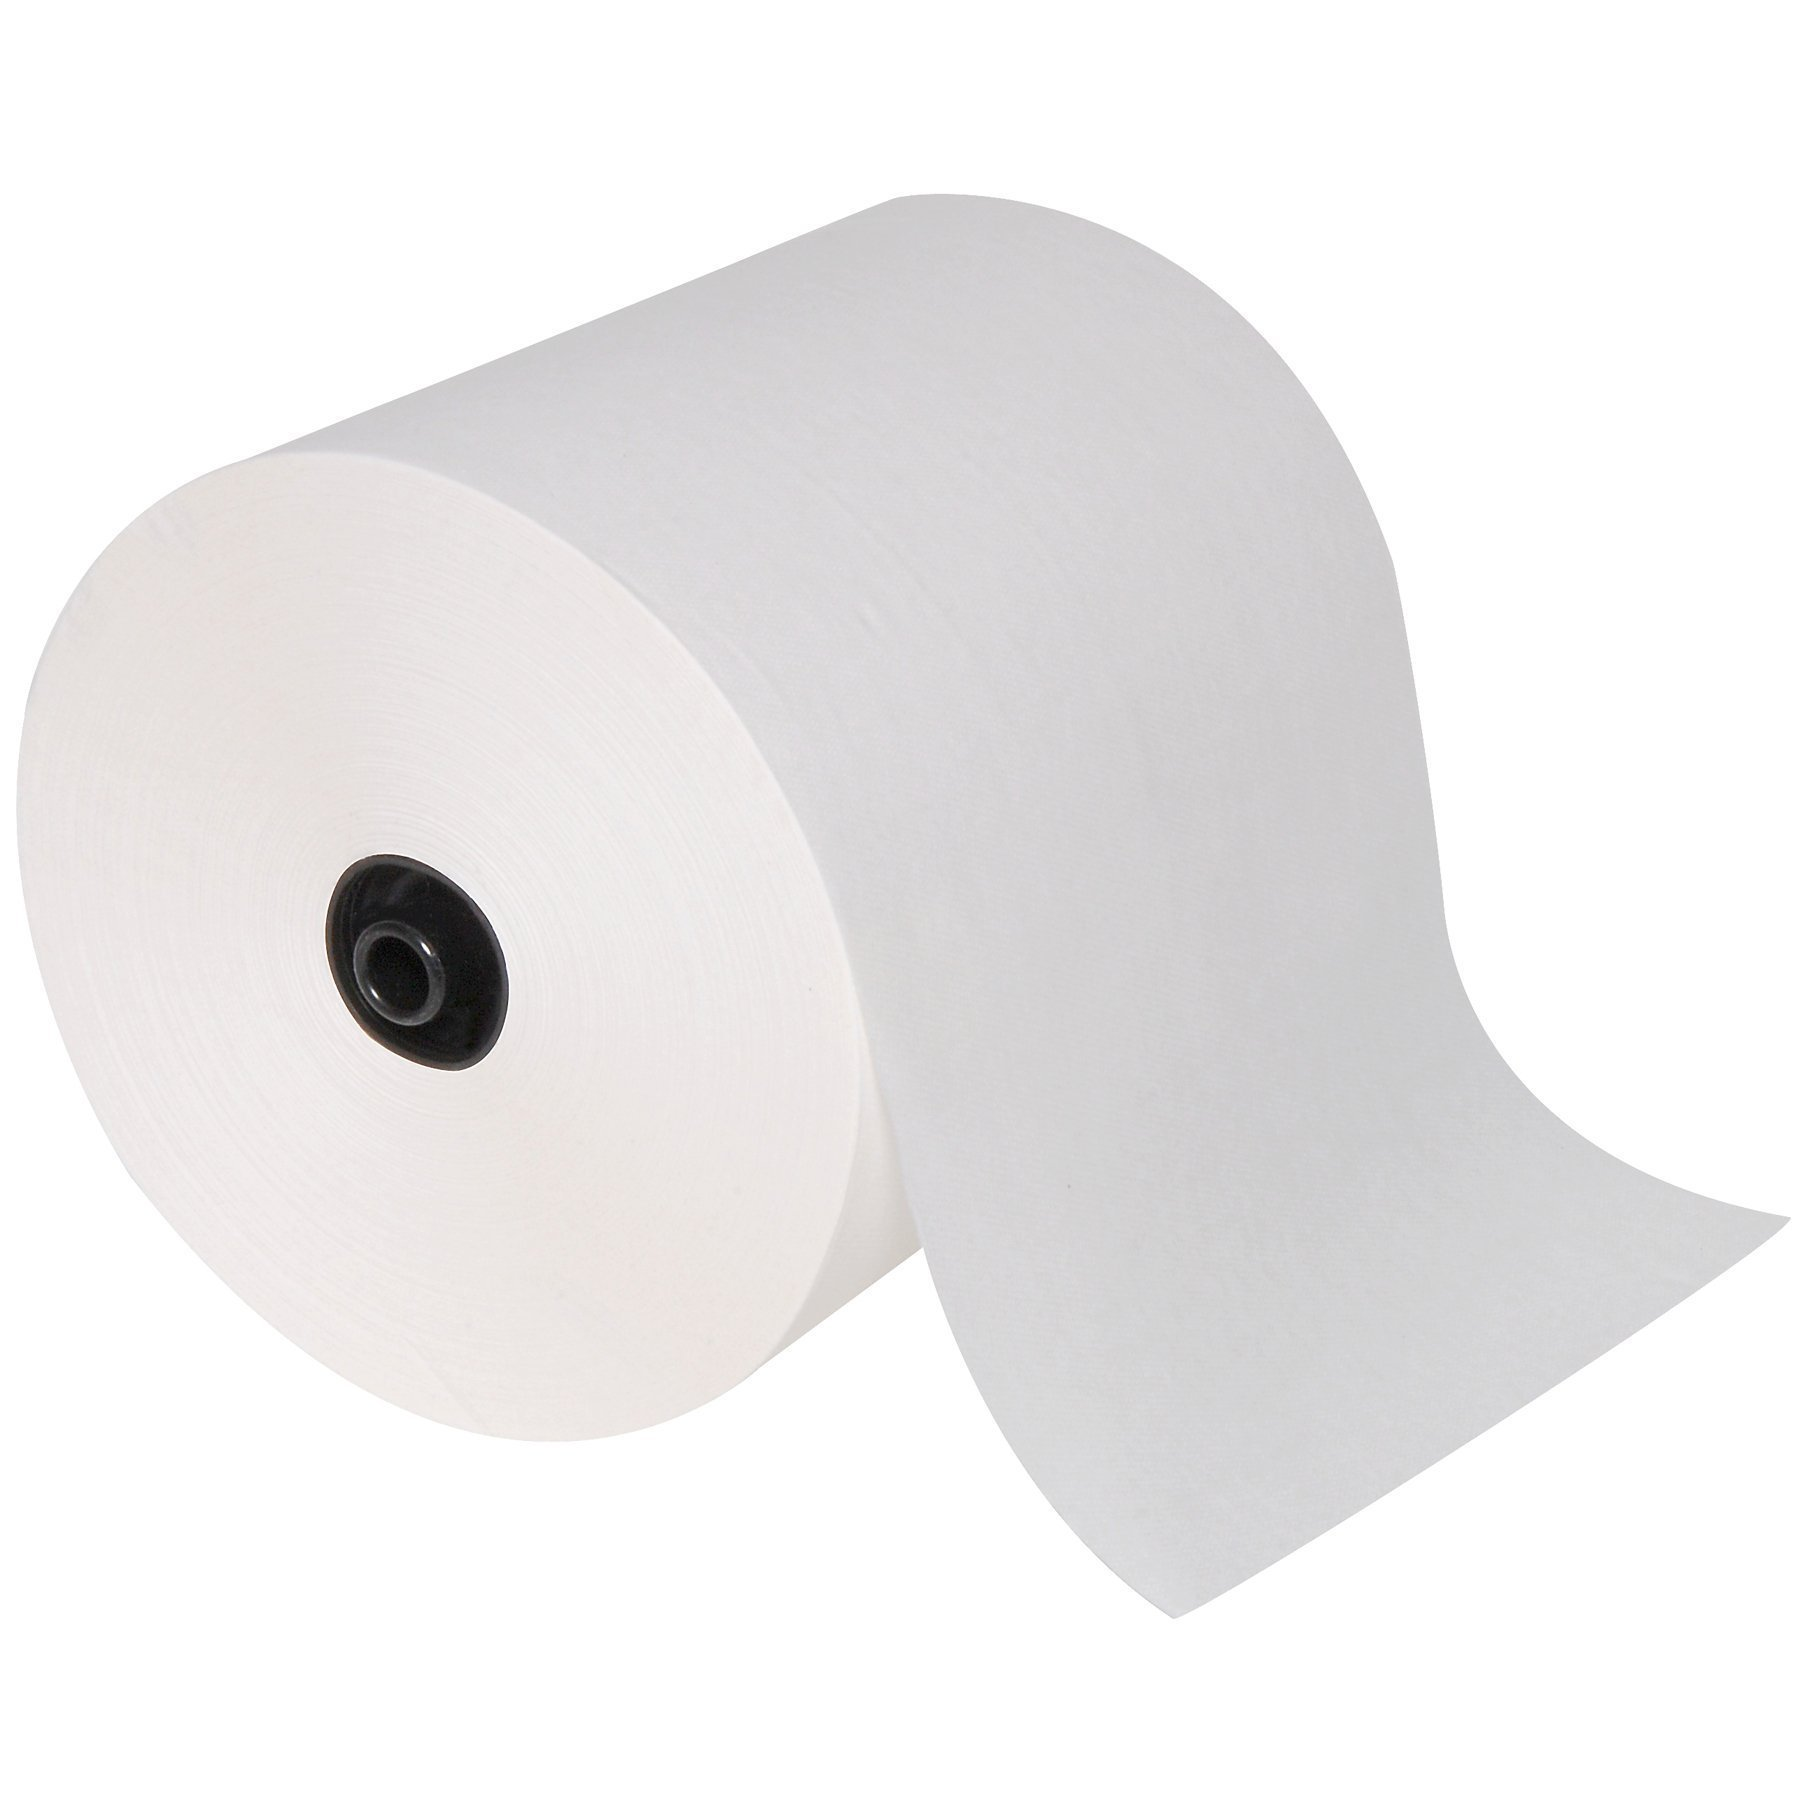 Georgia-Pacific enMotion 89430 EPA Compliant Touchless Roll Towel